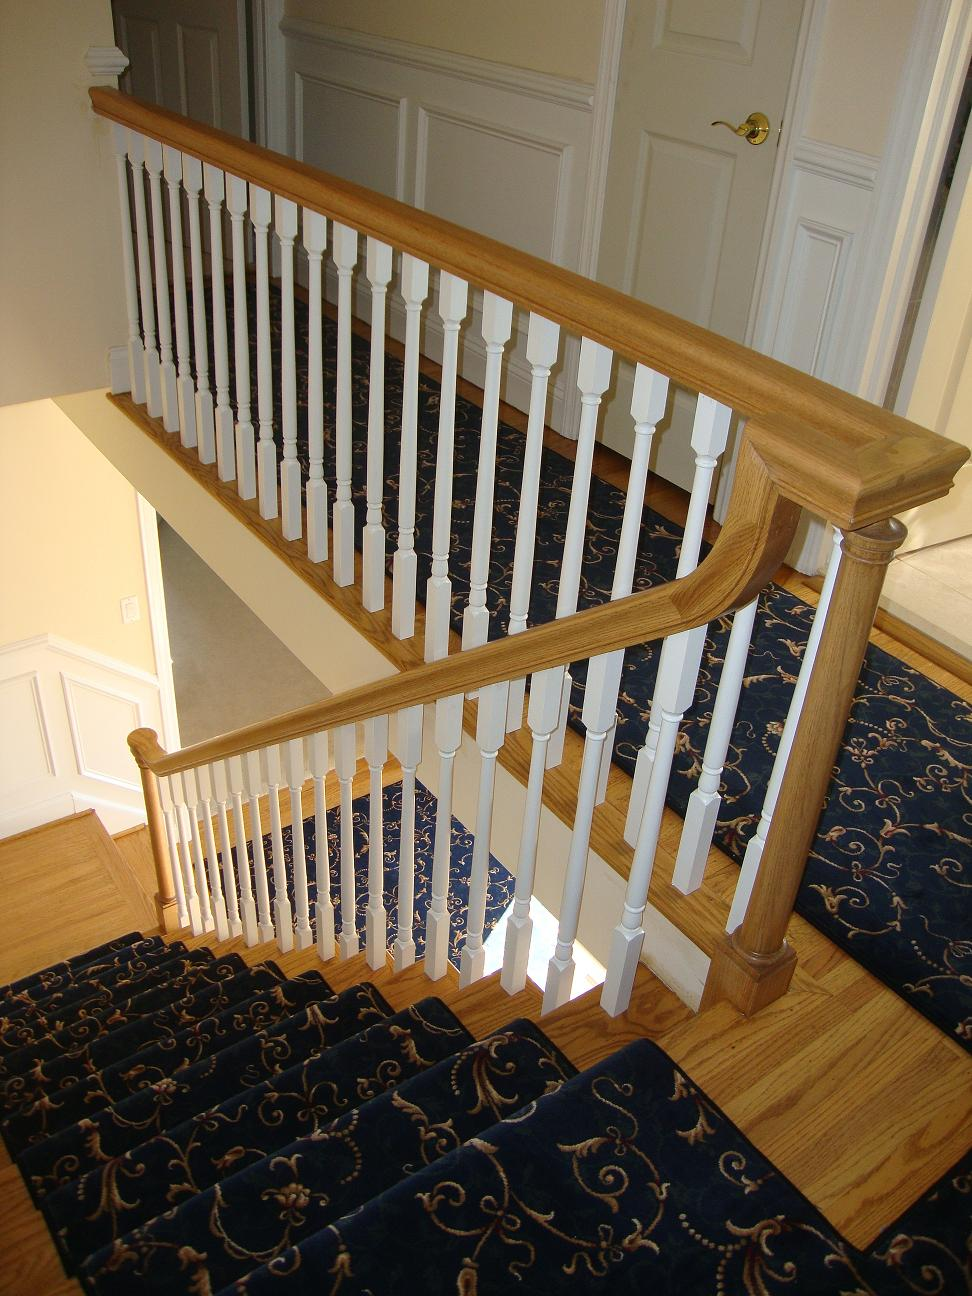 wood handrails for stairs | Wood Stairs and Rails and Iron Balusters: New Handrail ...